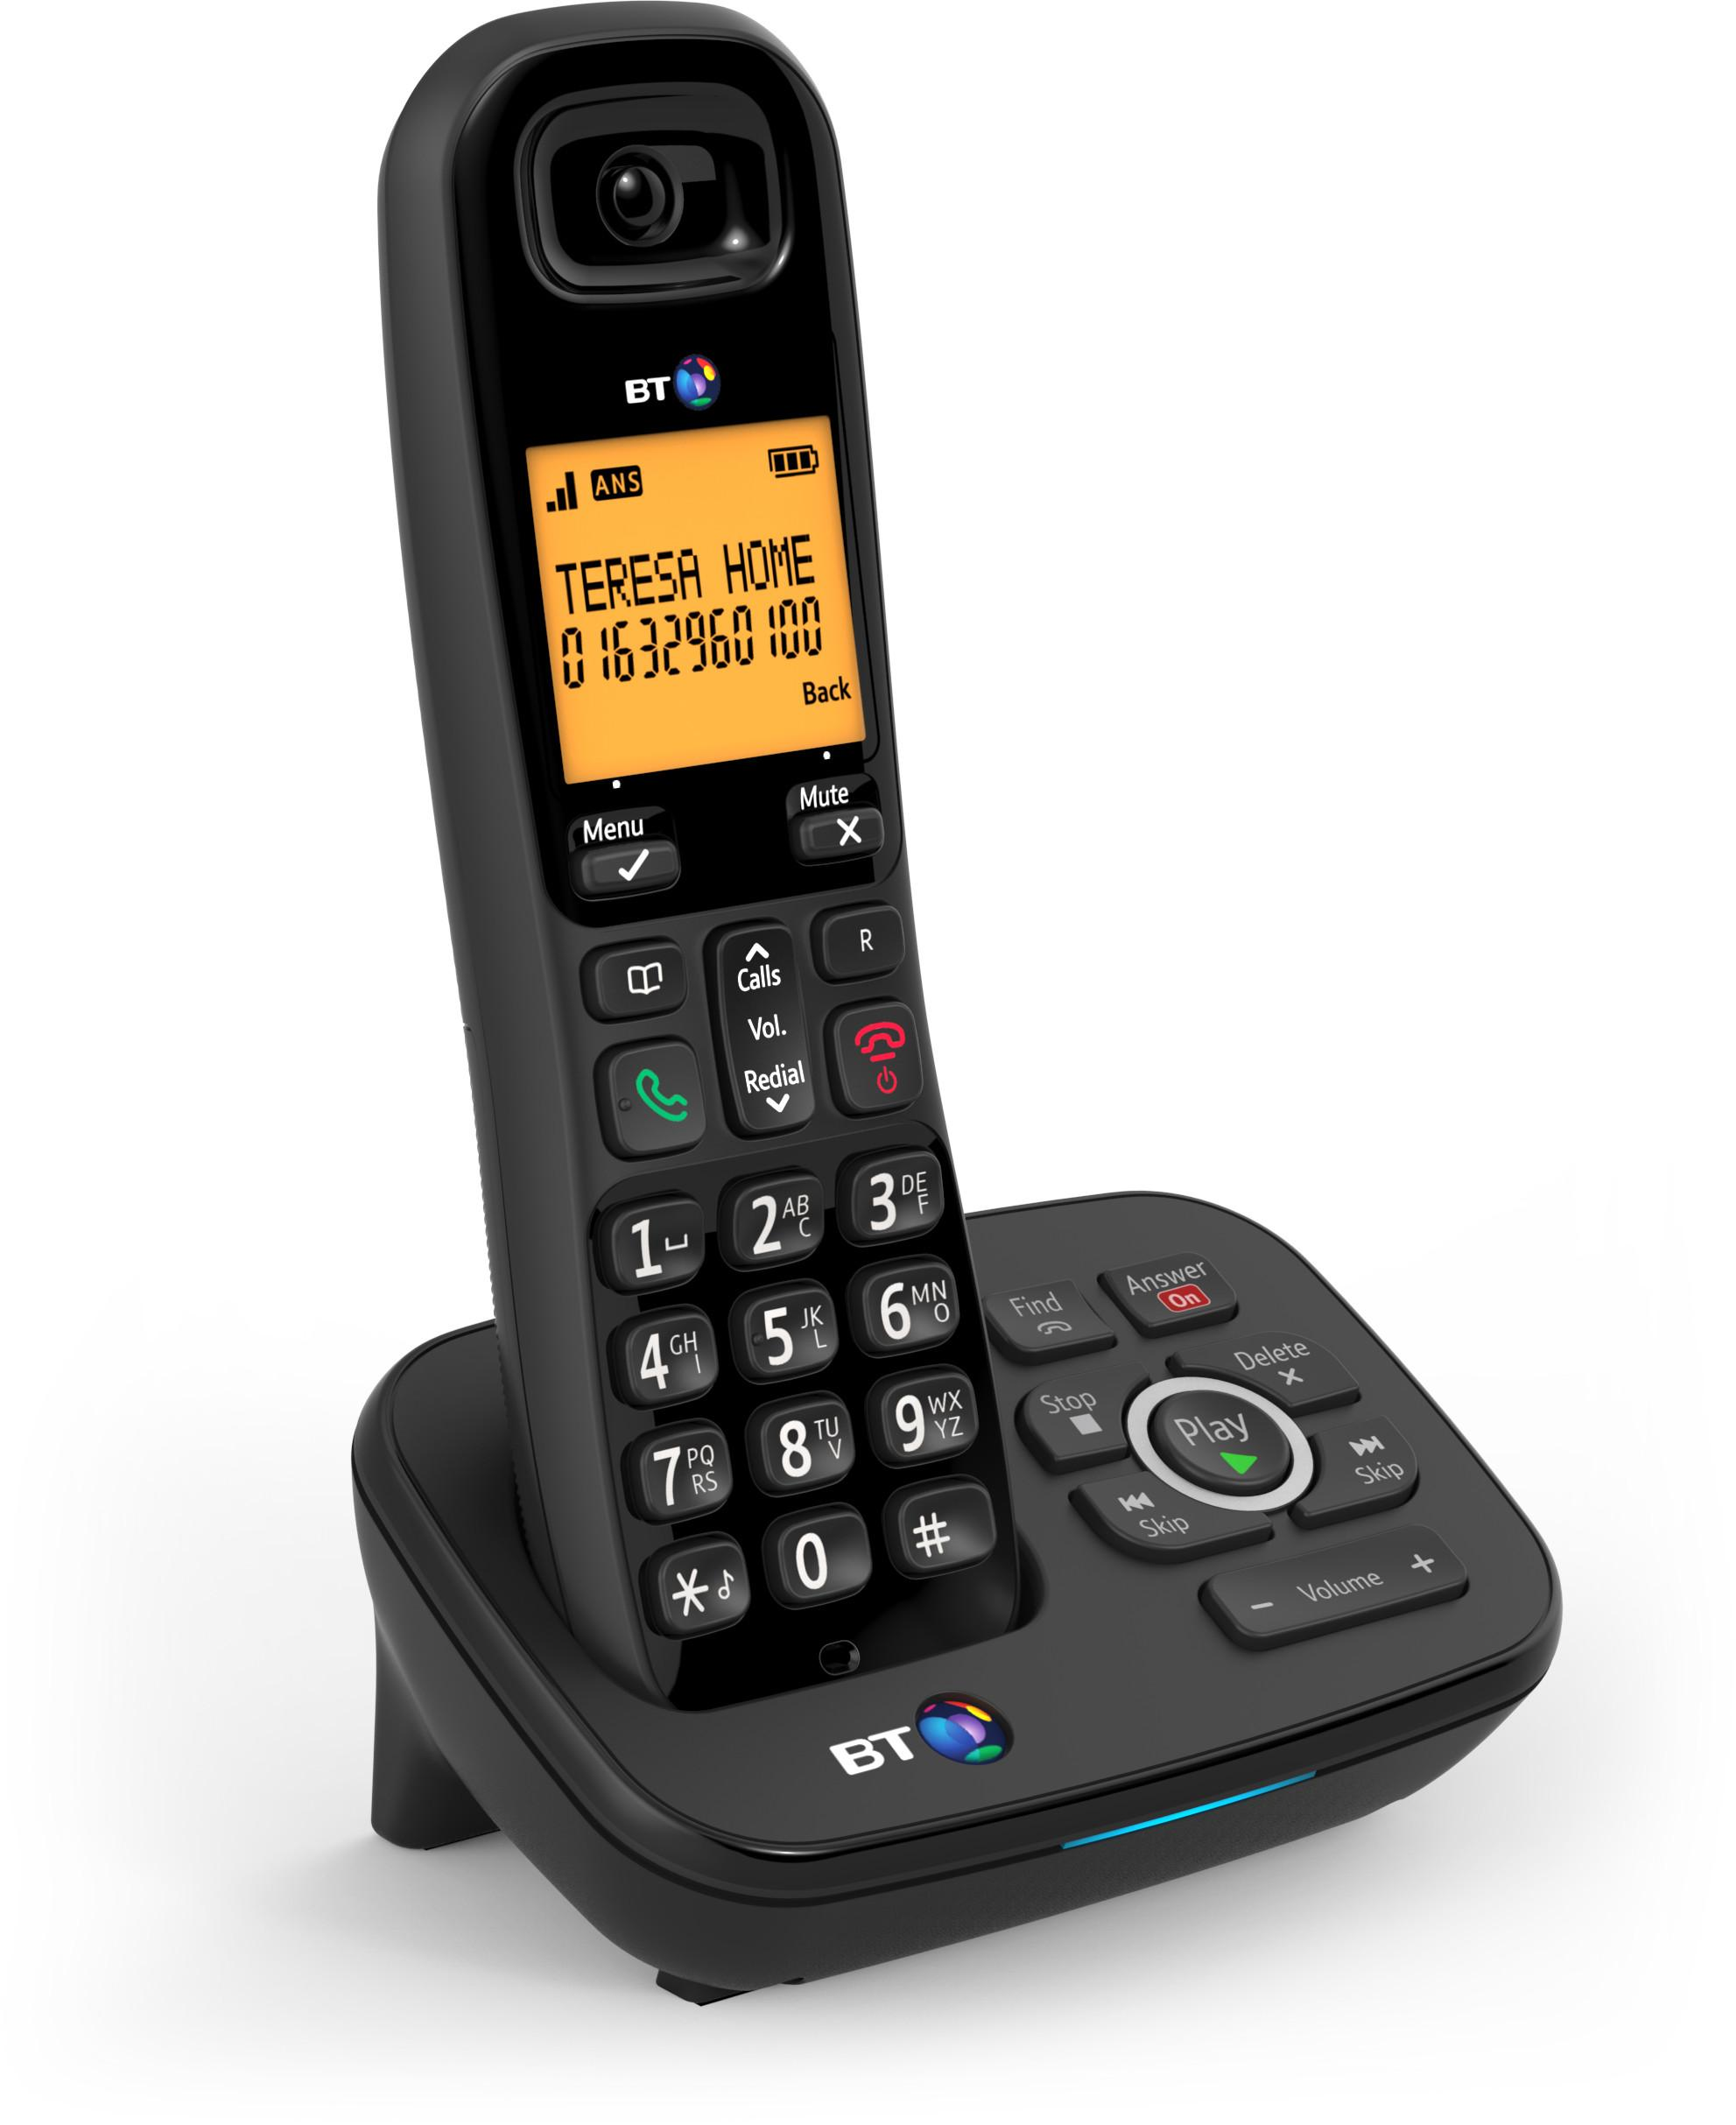 bt 1700 nuisance call blocker cordless home phone with. Black Bedroom Furniture Sets. Home Design Ideas